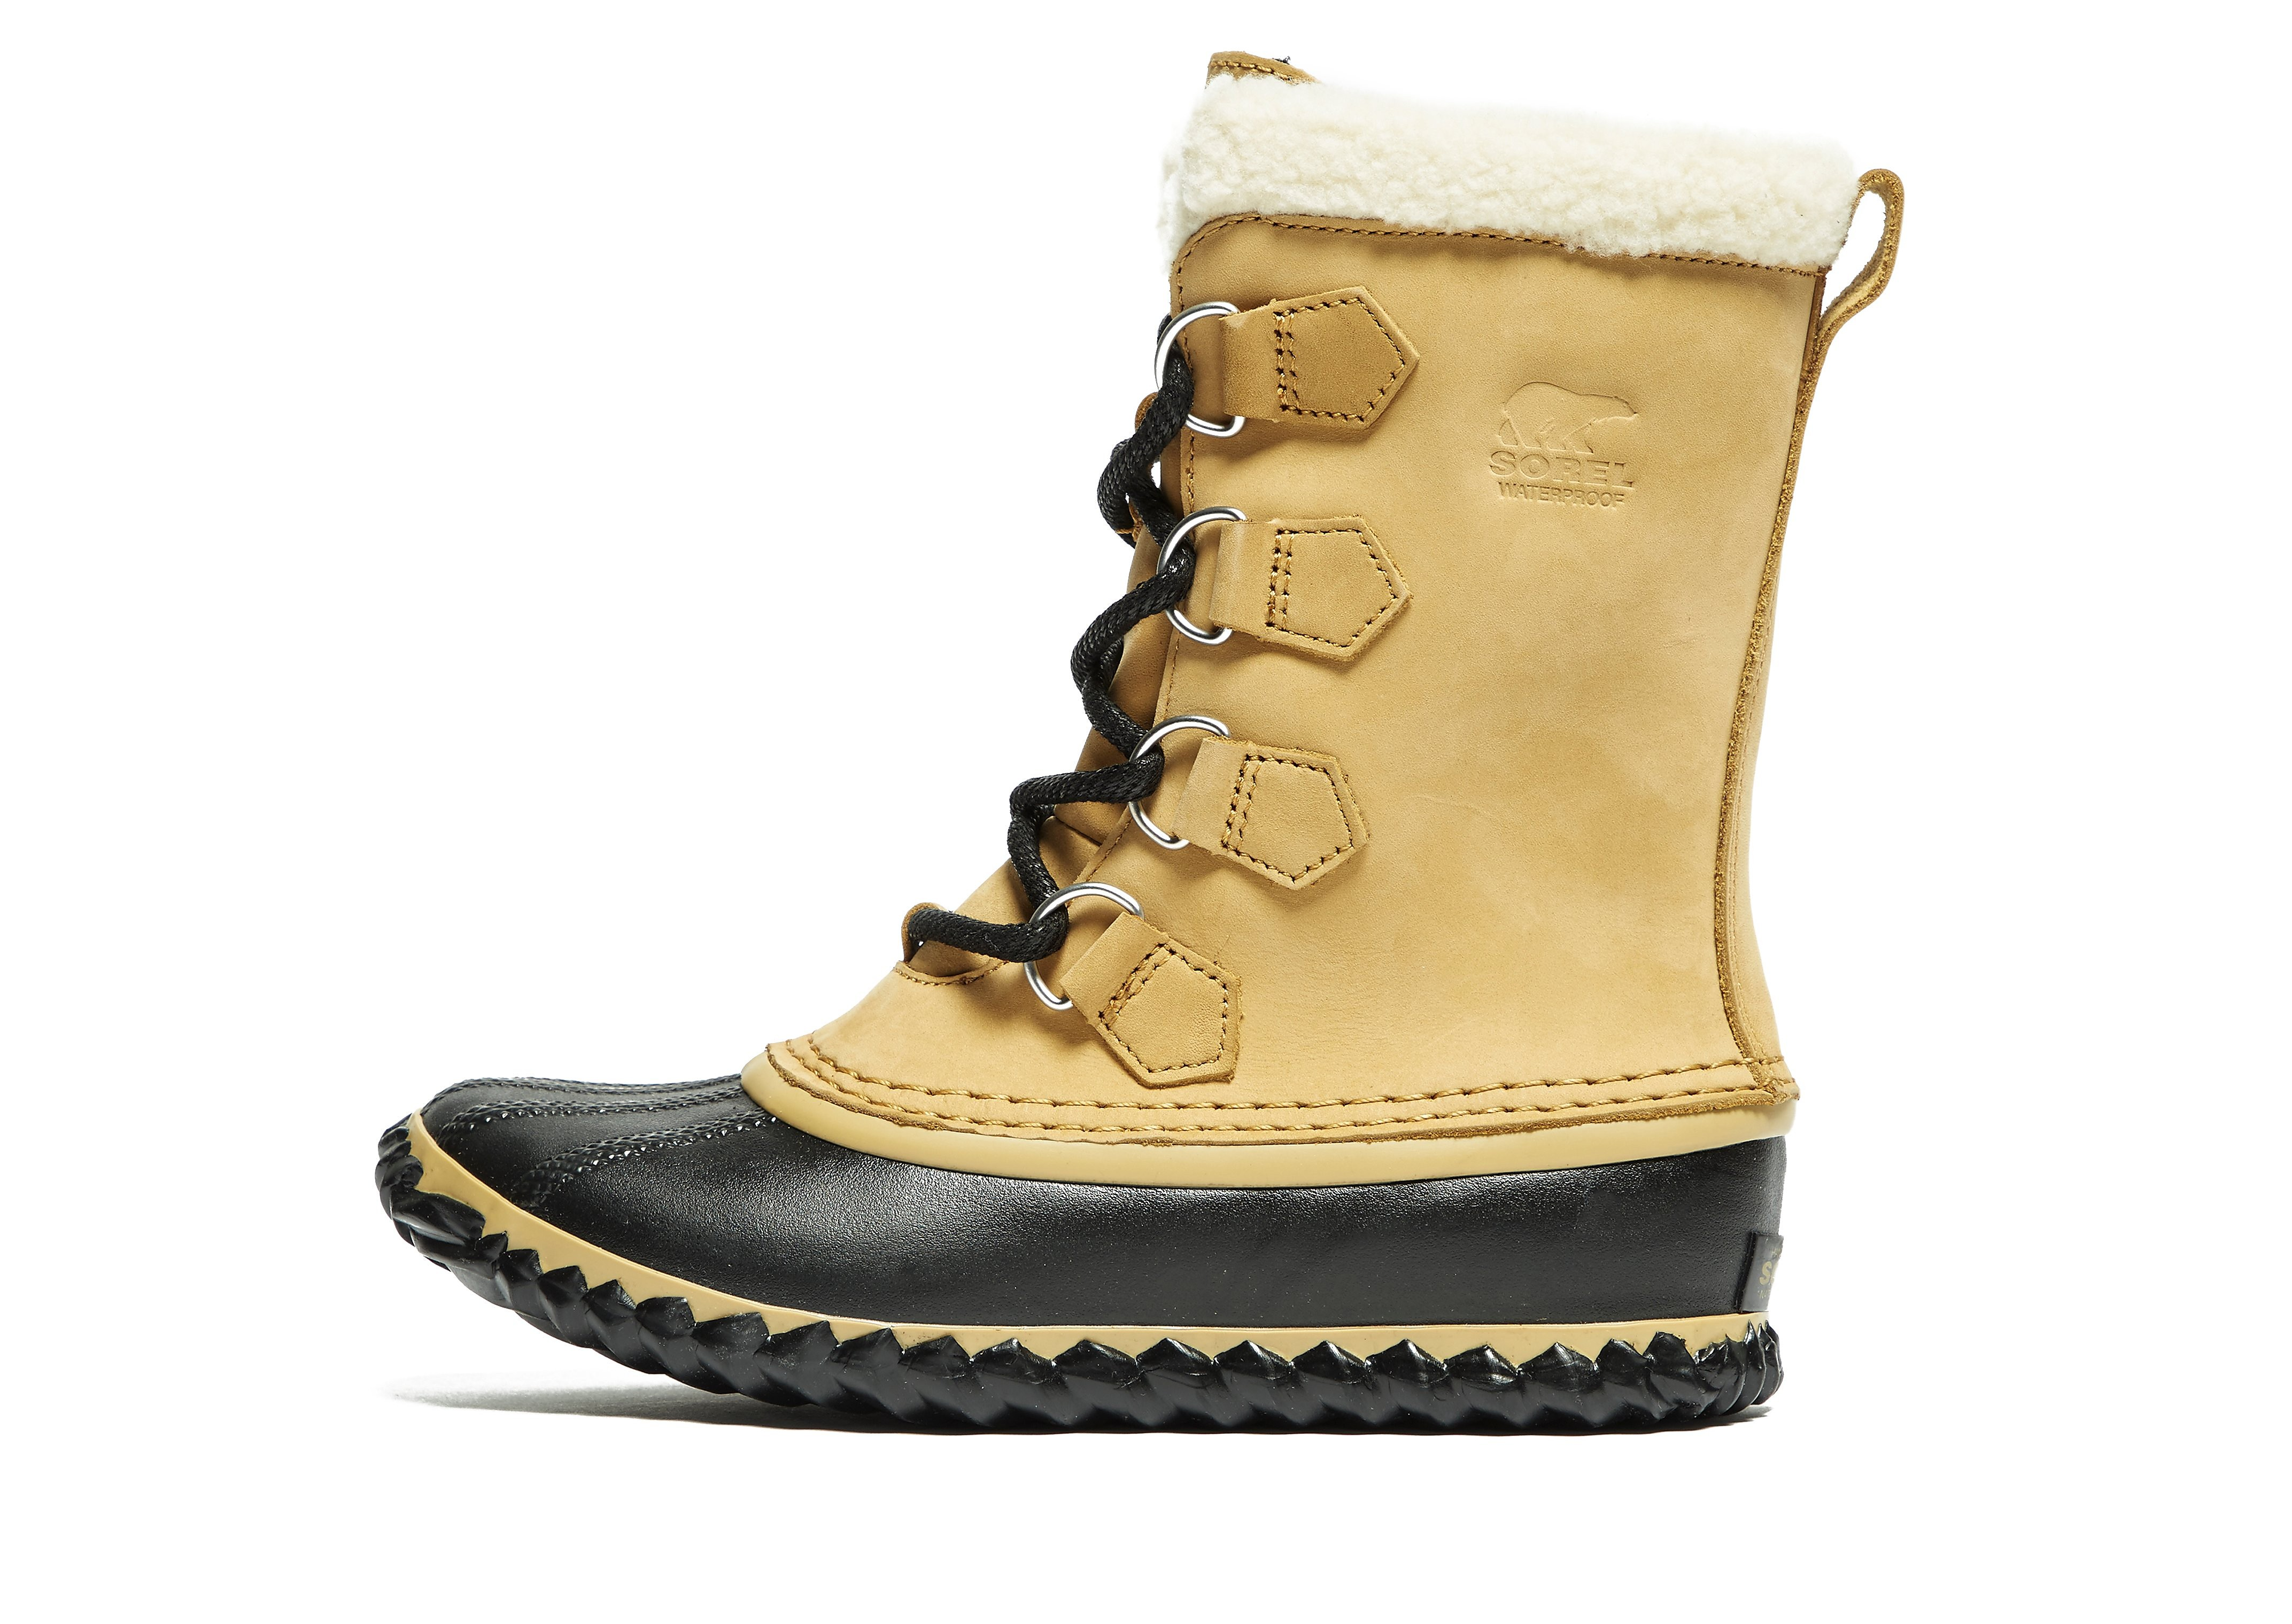 Sorel Caribou Slim Women's Winter Snow Boots